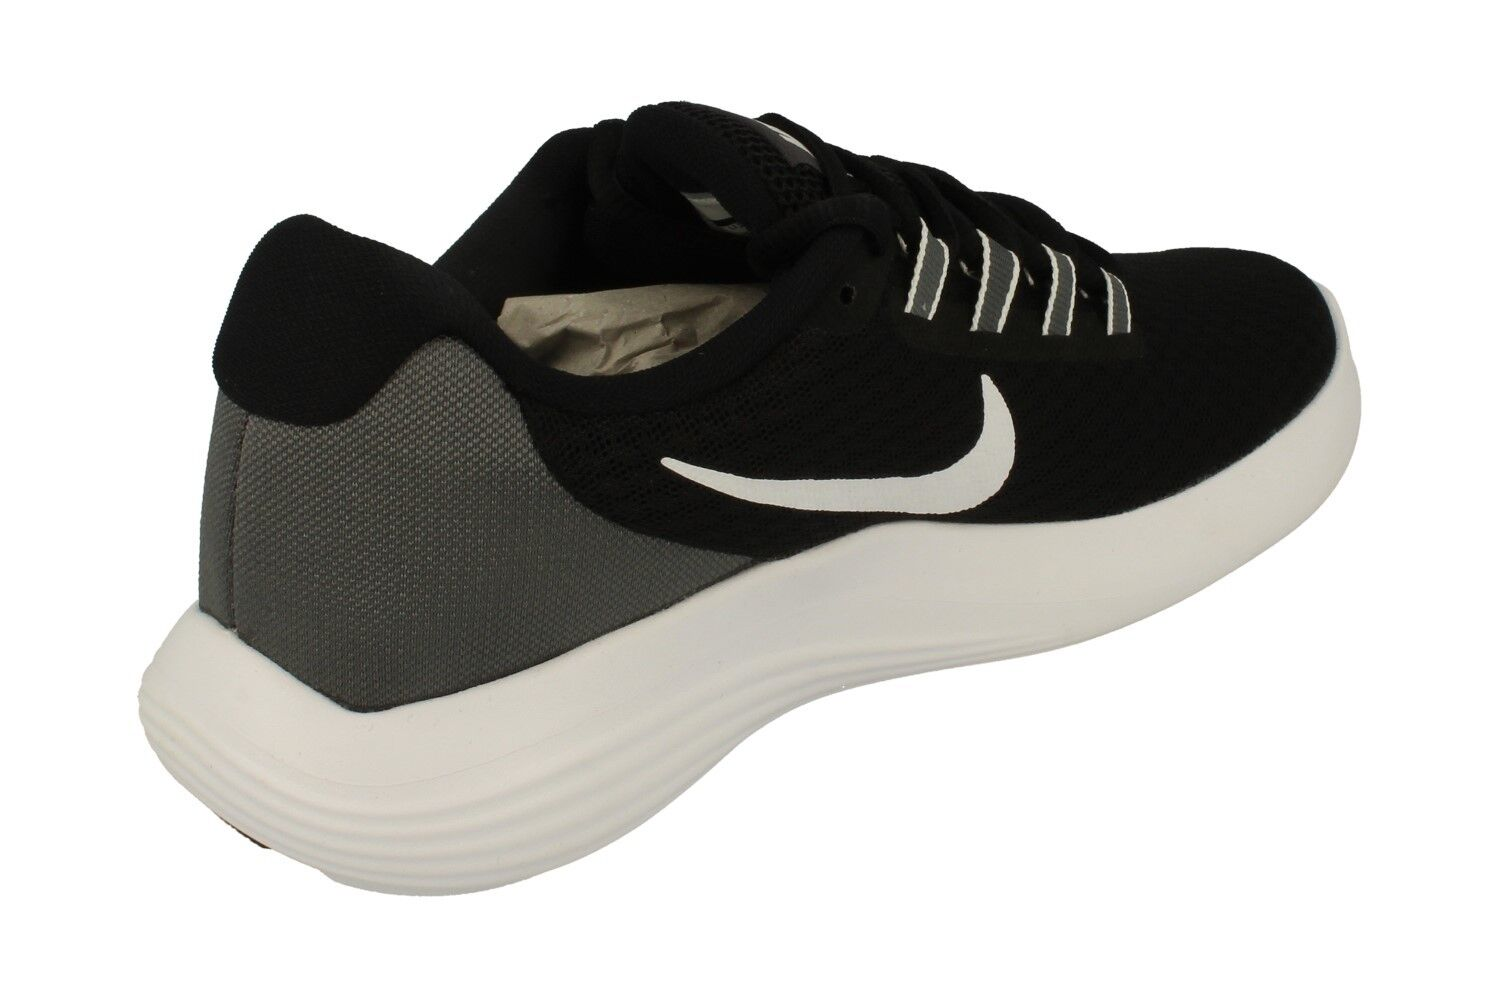 timeless design fa986 0d659 ... Nike Zapatillas Para Mujer Running luanrconverge 852469 Tenis Zapatos  001 ...